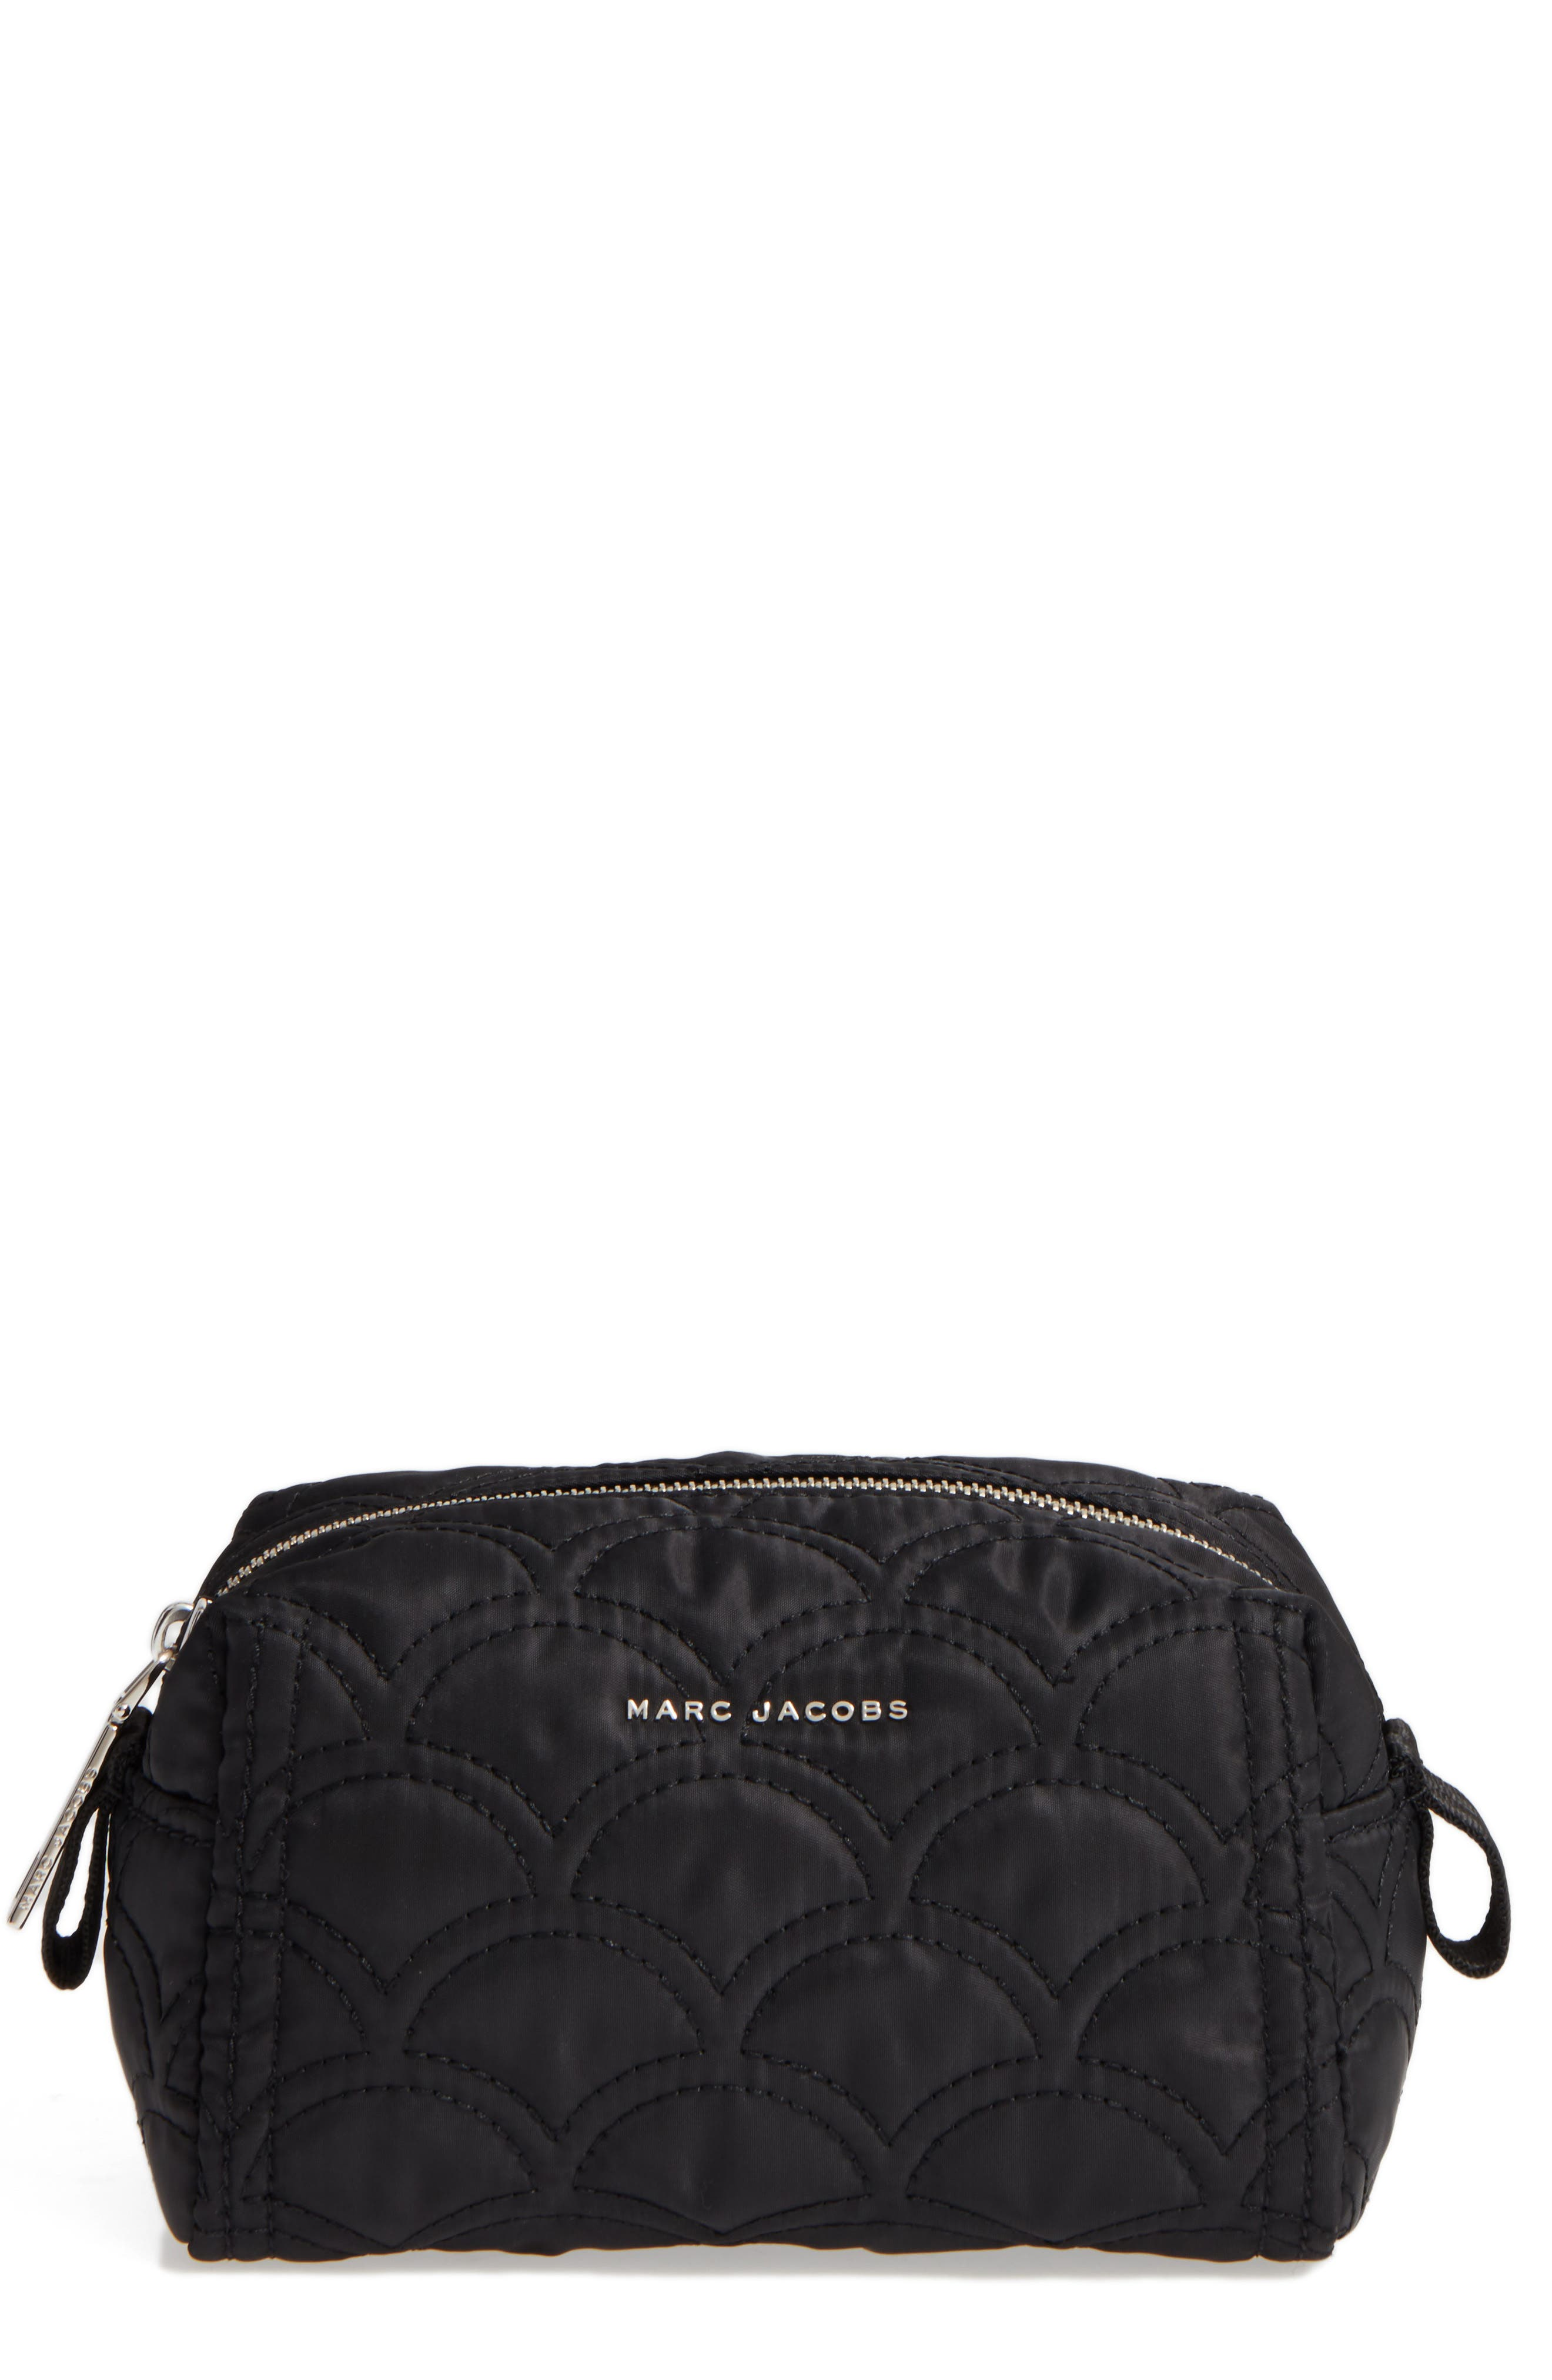 MARC JACOBS Large Quilted Cosmetics Bag